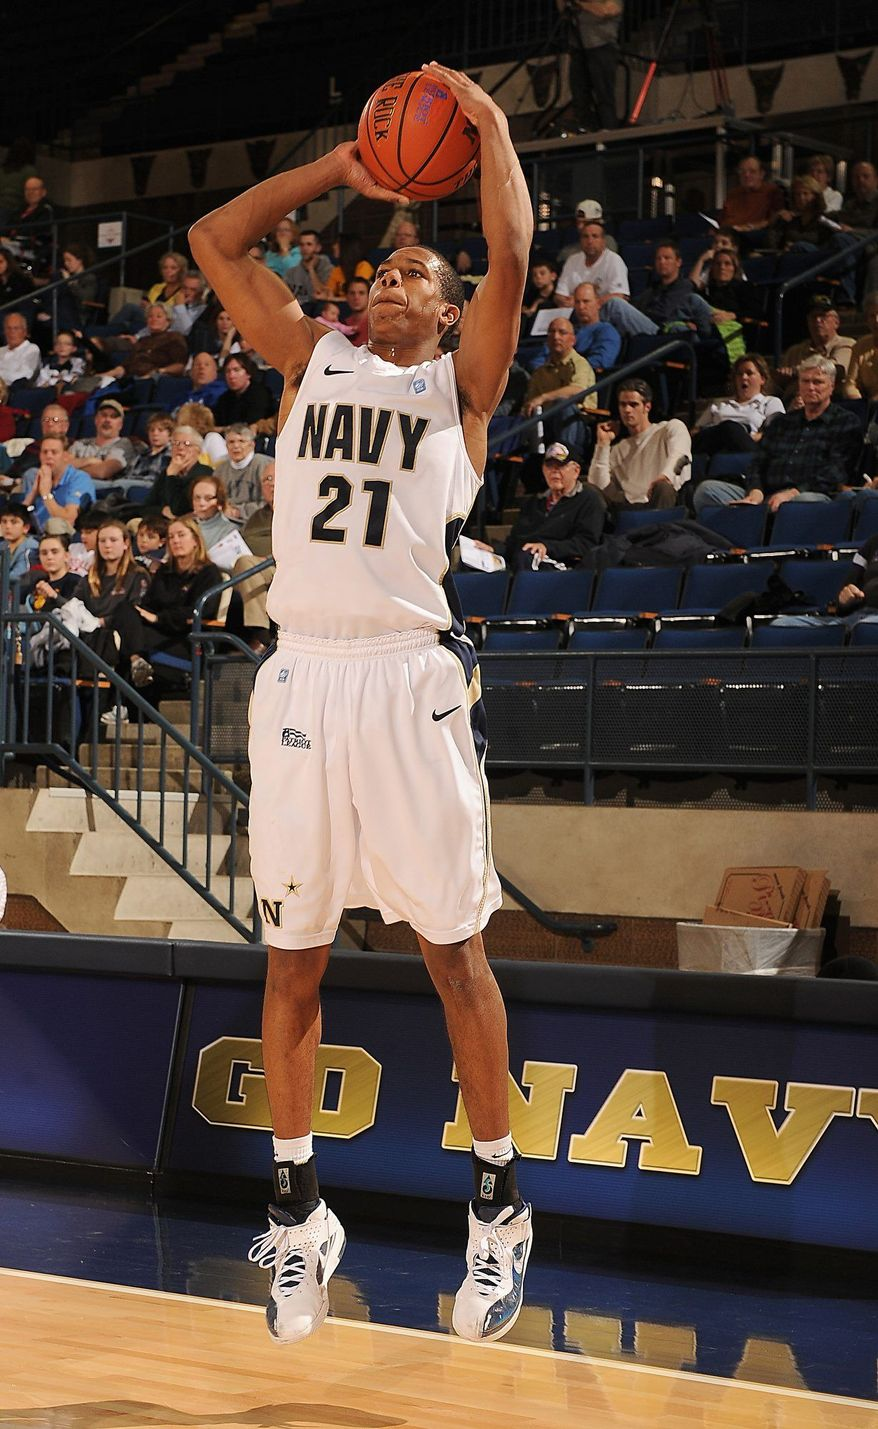 Worth Smith's freshman season ended with a broken foot in the Patriot League tournament quarterfinals. (Navy Athletics)